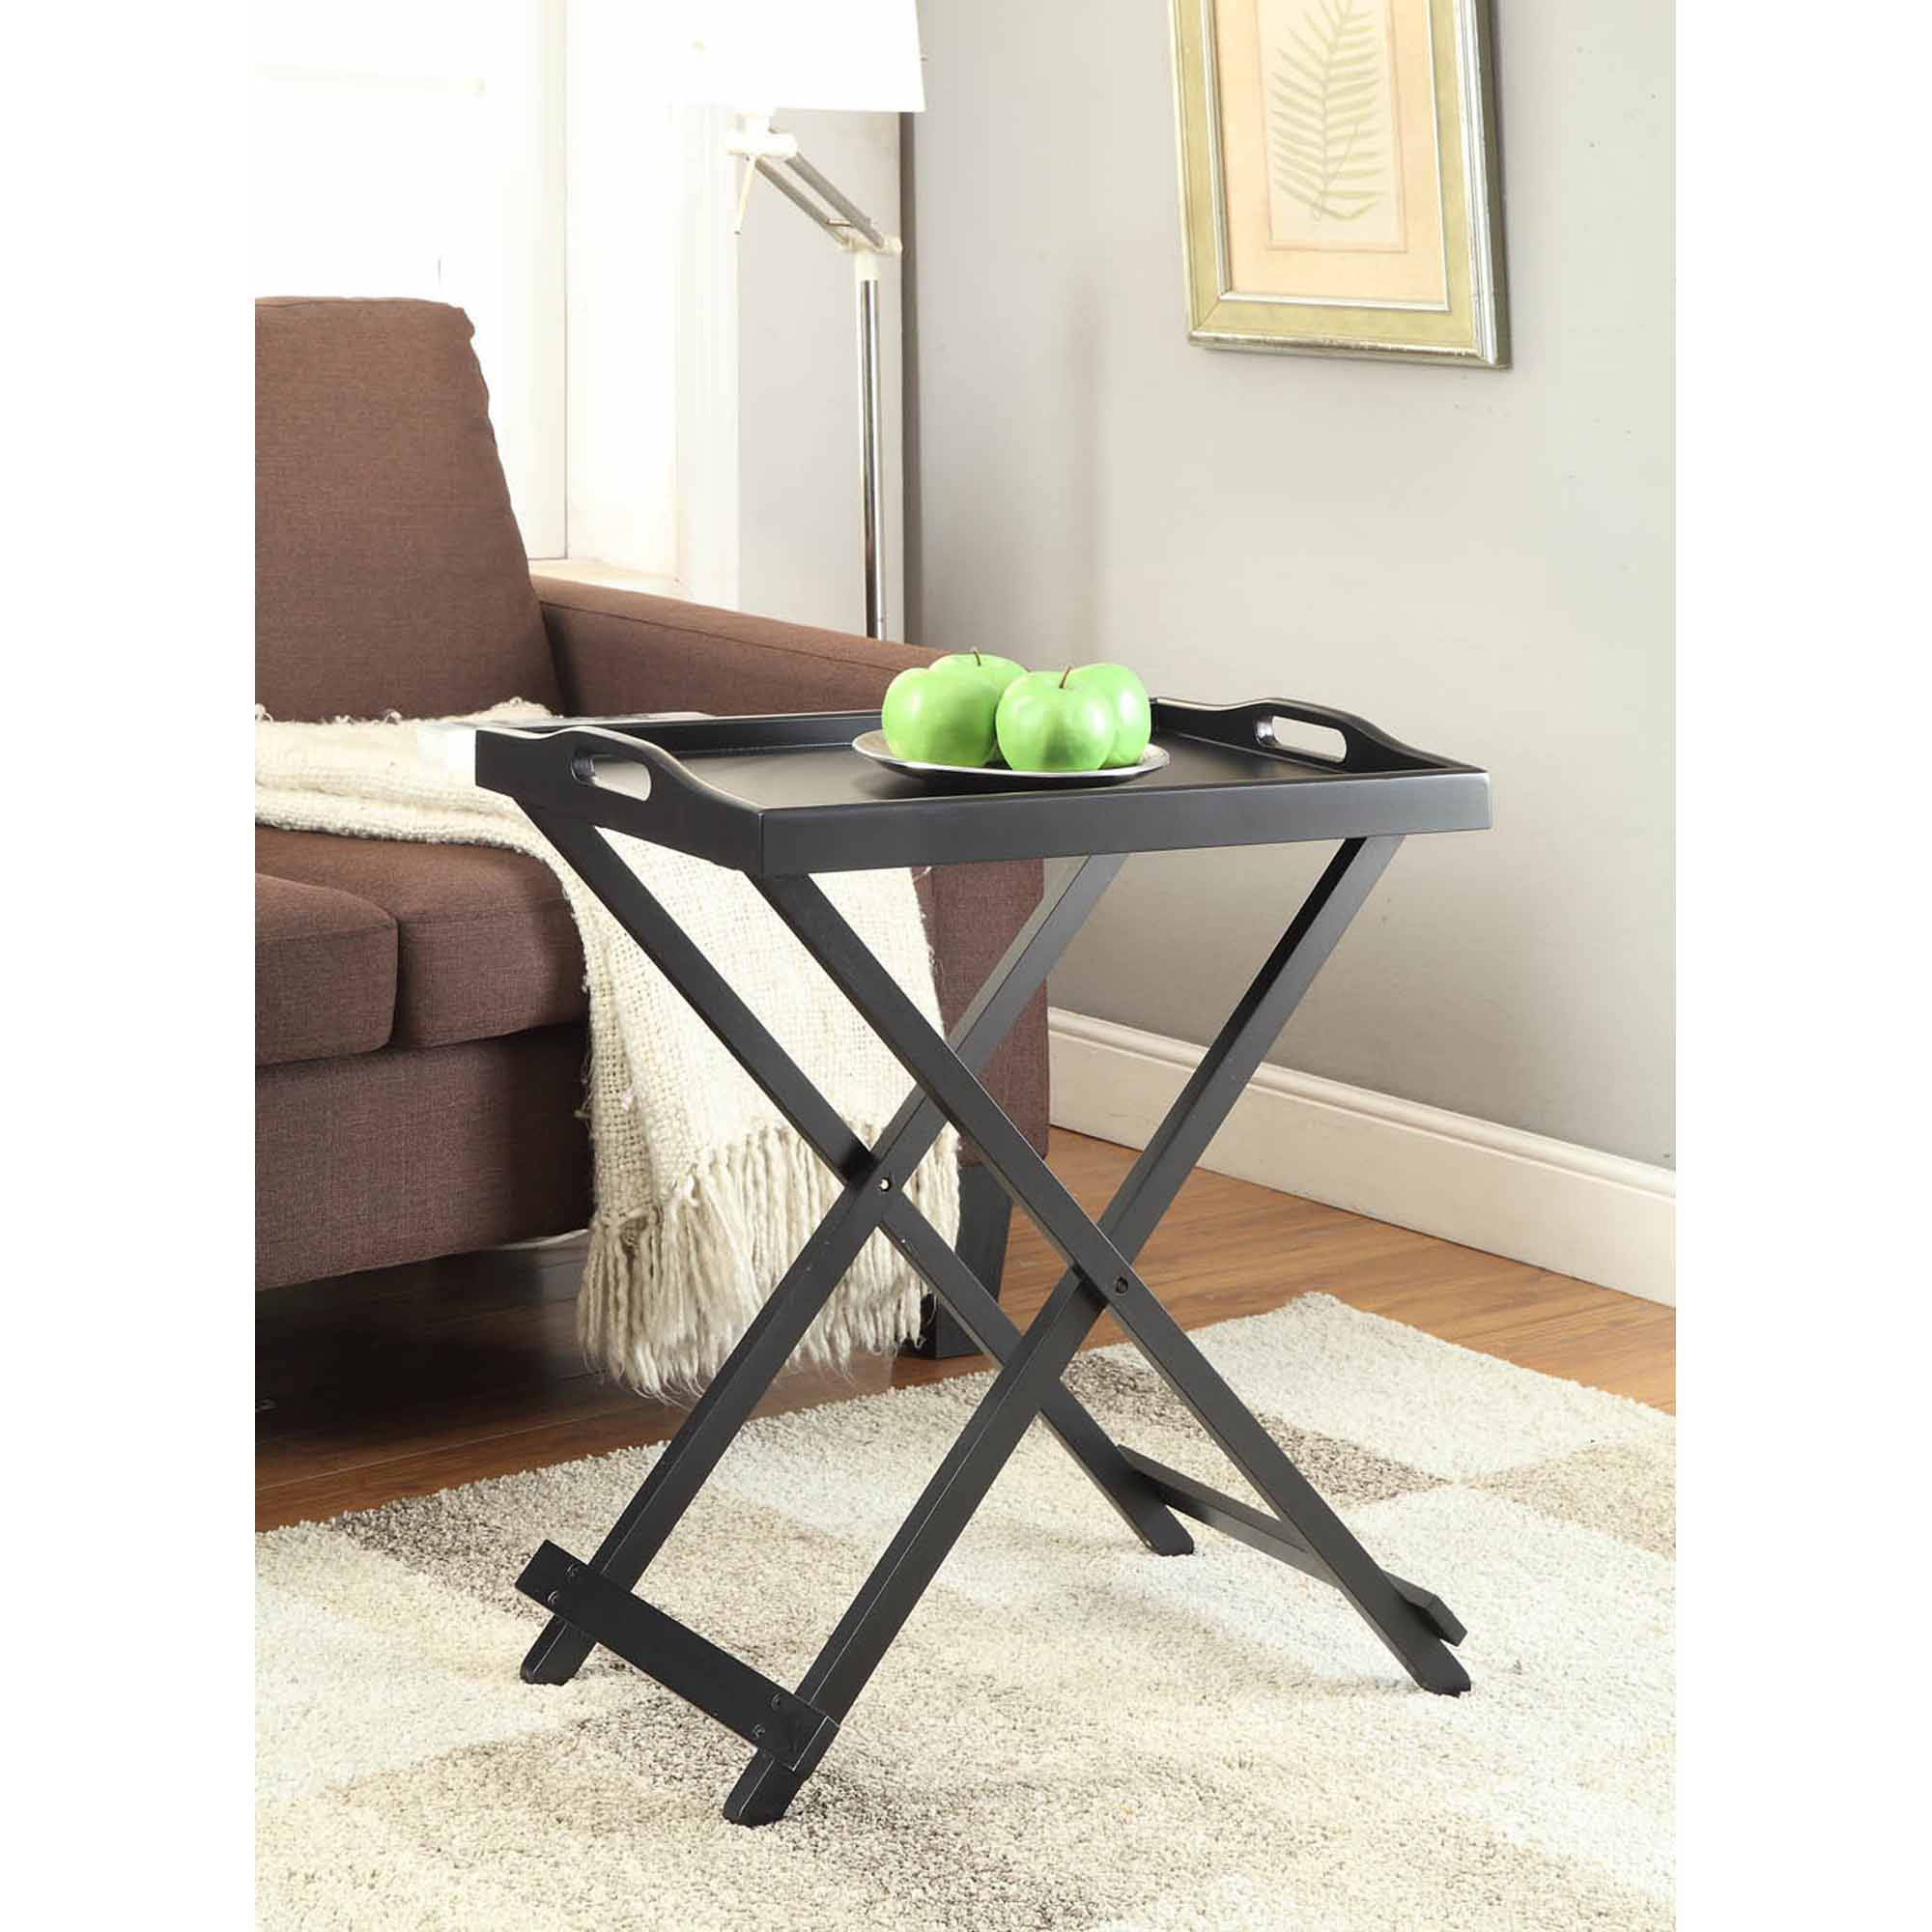 adams manufacturing quik fold compact side table accent with tray battery operated lamps round outdoor patio hairpin legs ikea coffee nest tables underneath curtain wire umbrella